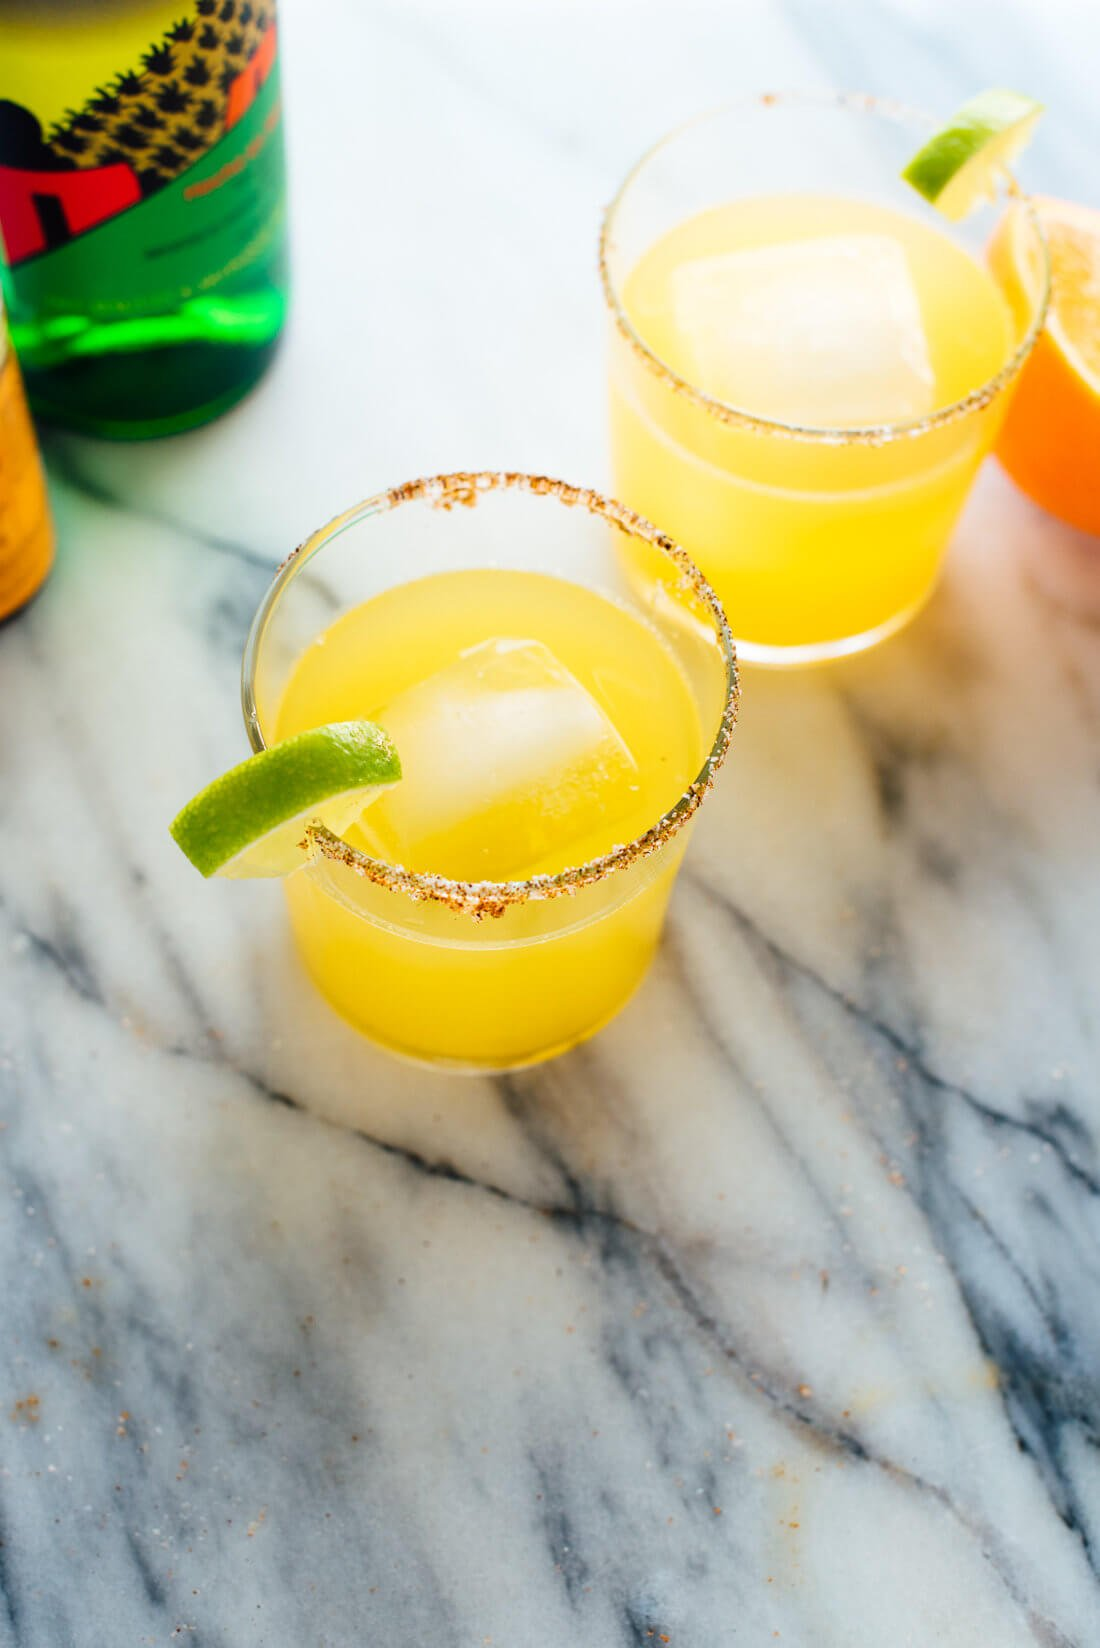 This mezcalita recipe is made with fresh orange juice, lime juice, and of course, mezcal! Get this #cocktail recipe at cookieandkate.com